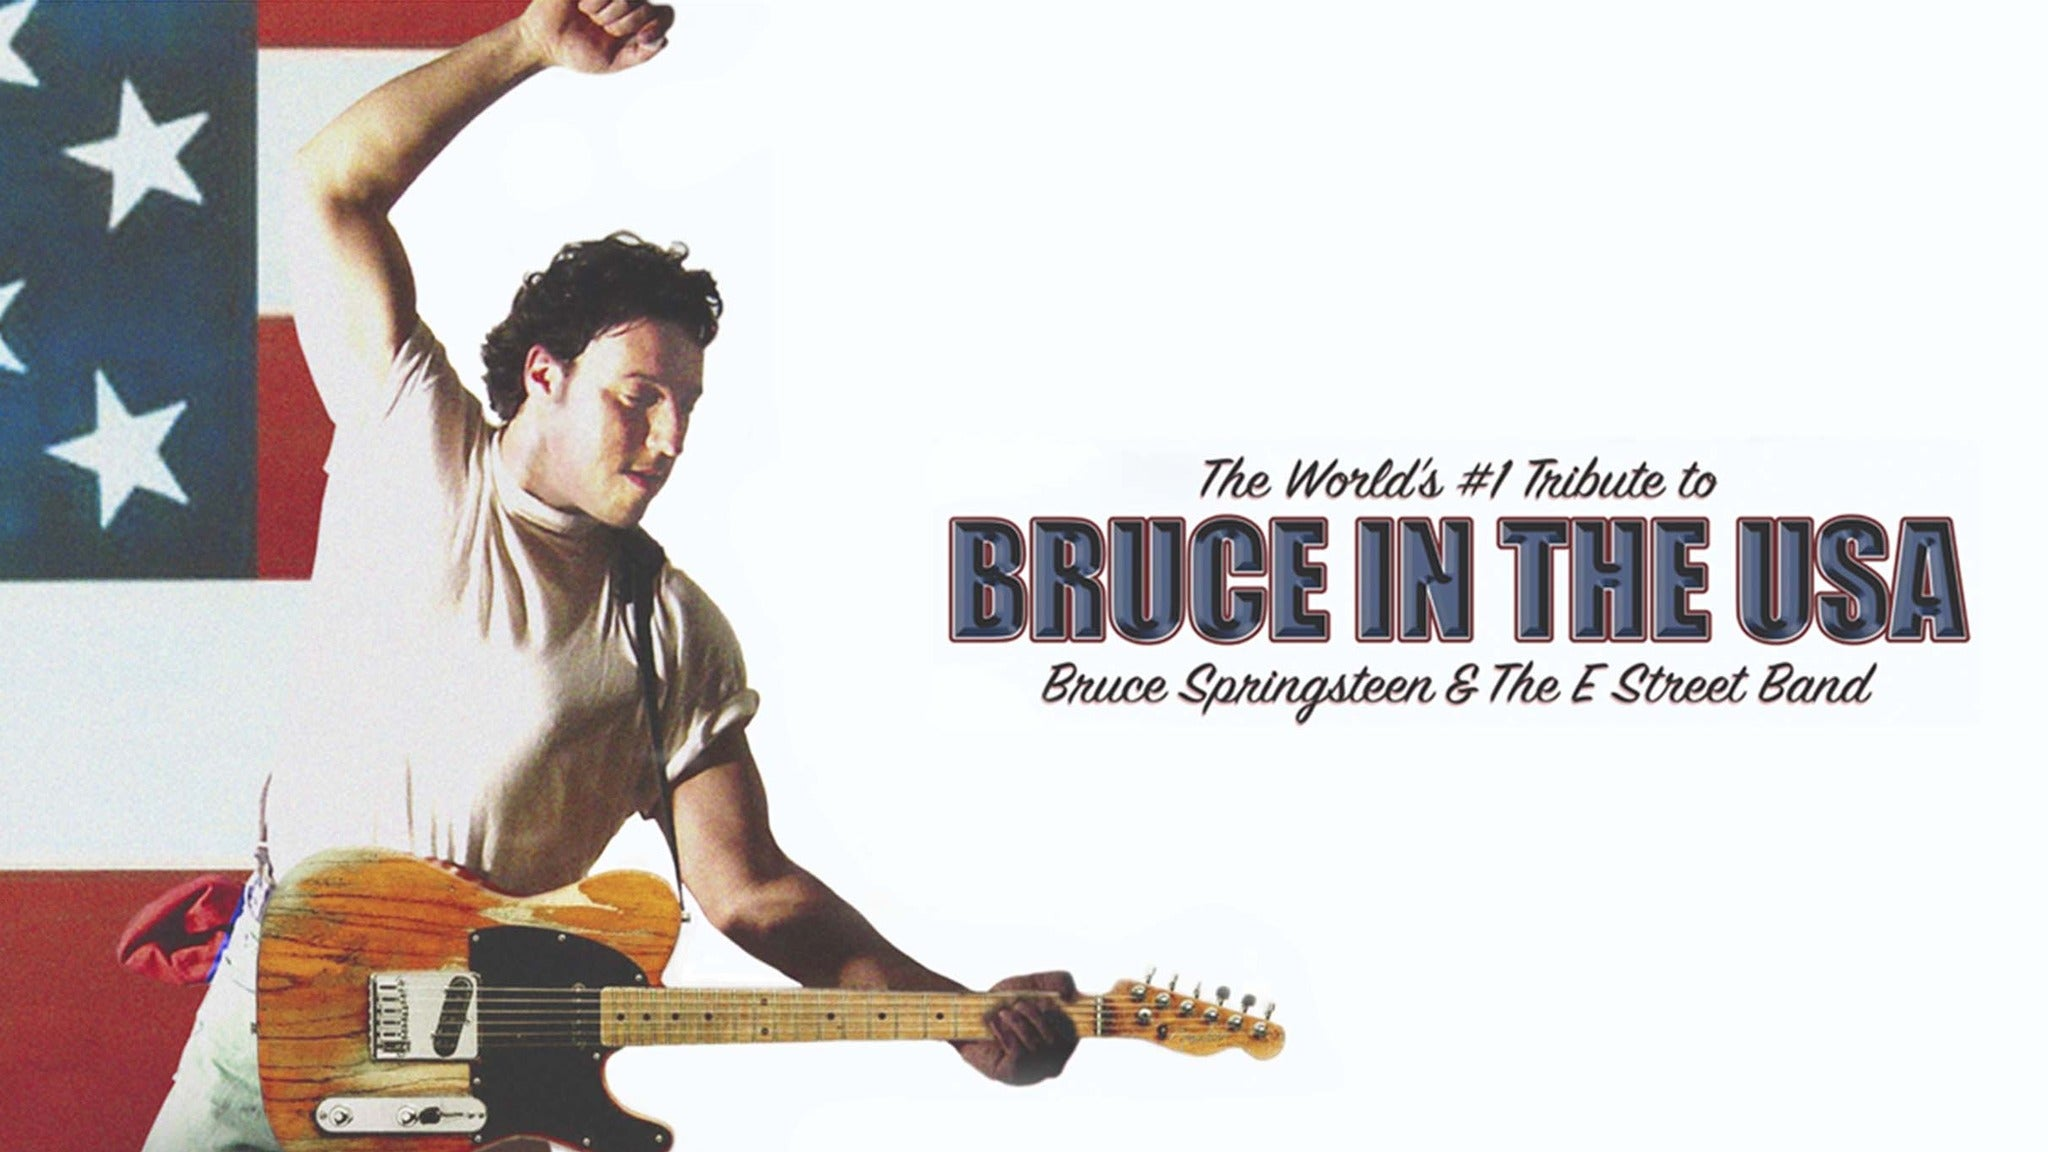 Bruce in the USA at Scottish Rite Auditorium